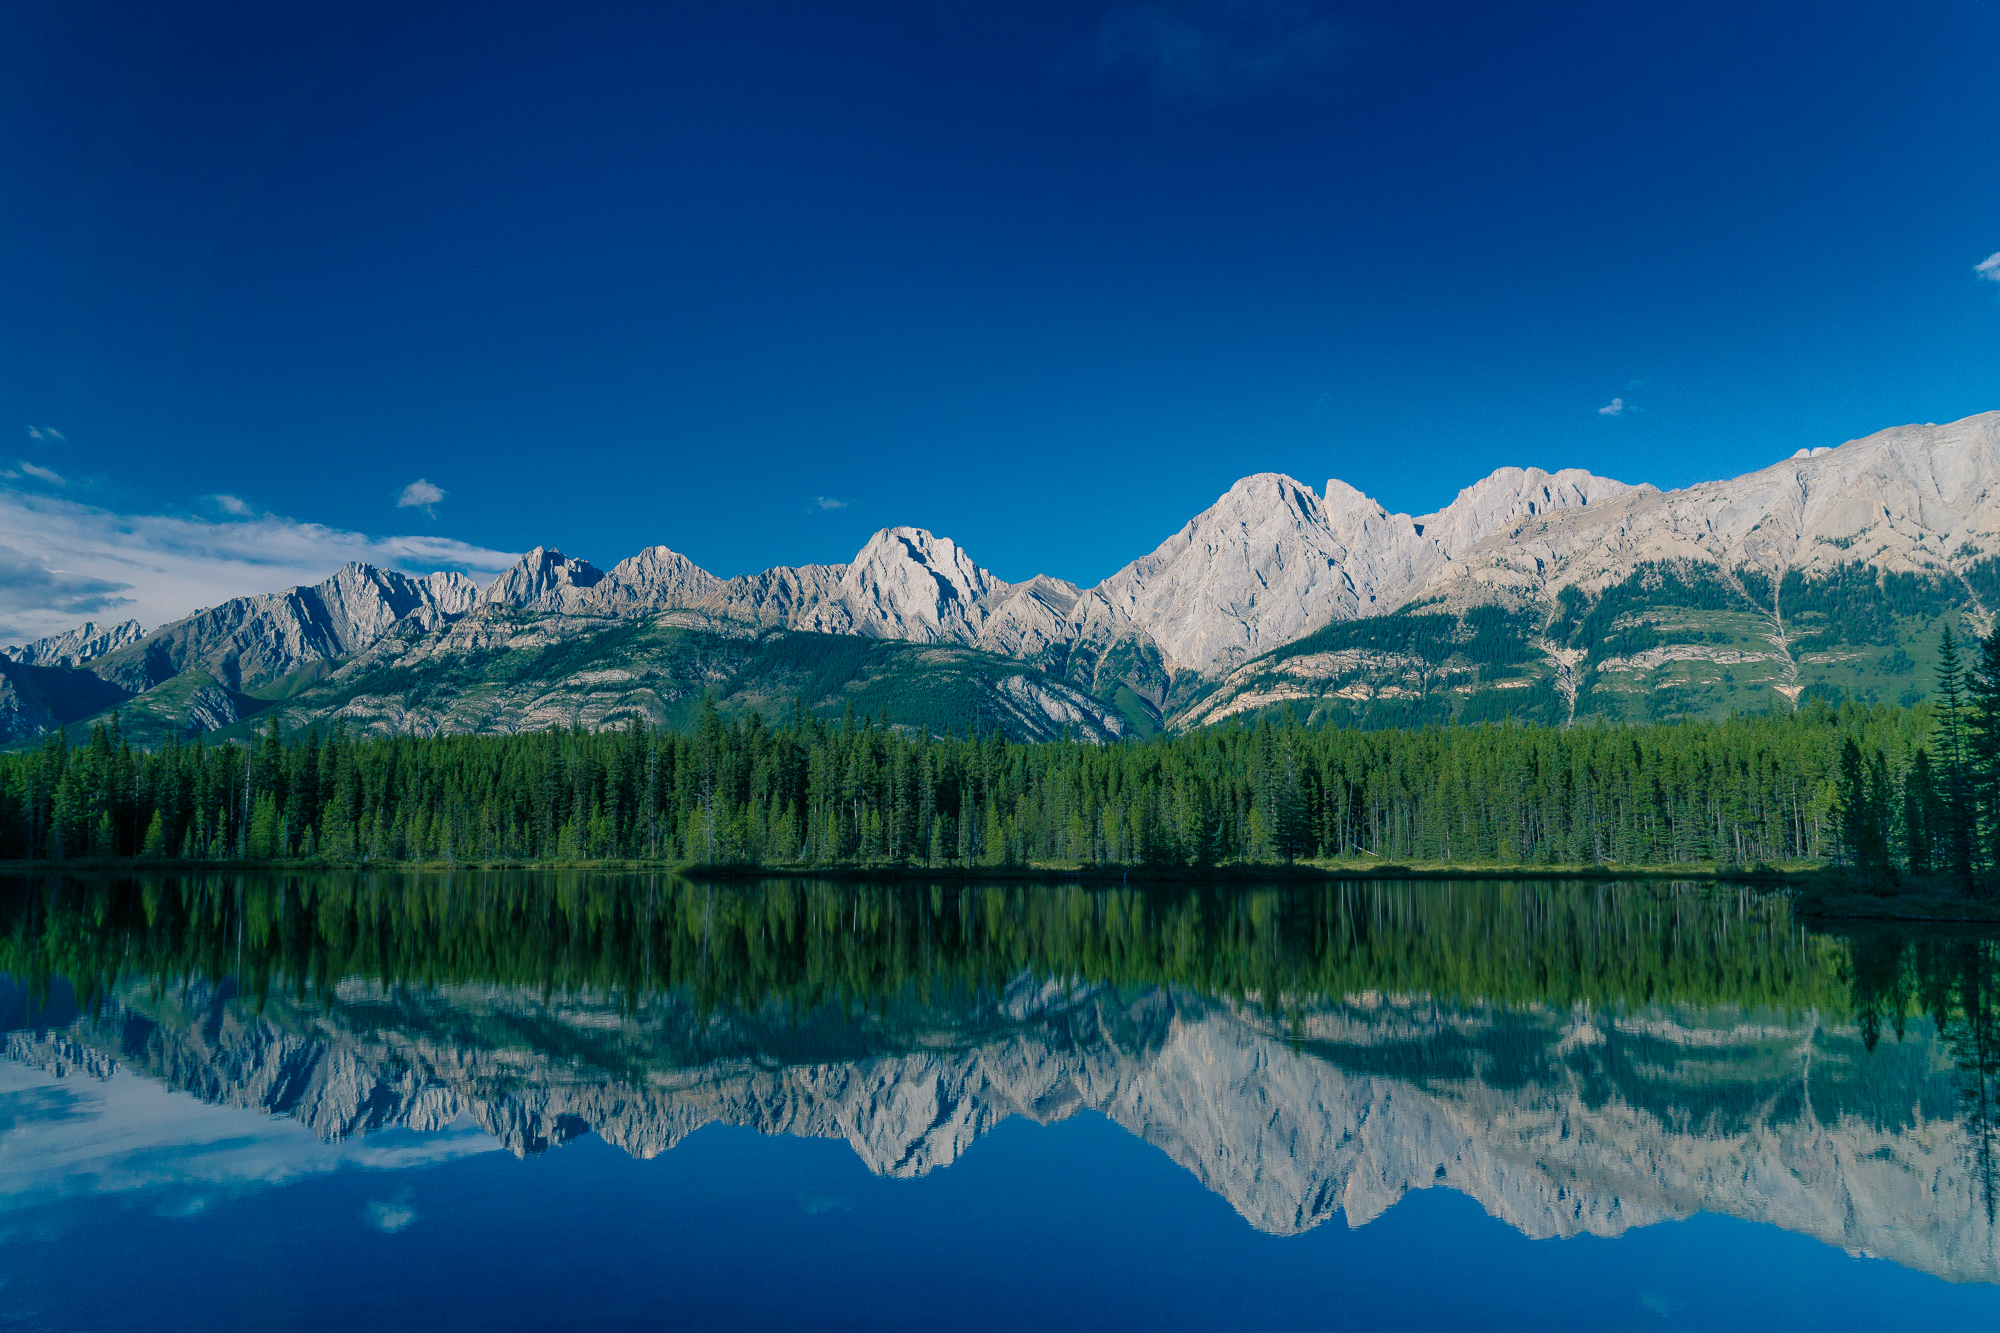 Mountains Reflecting